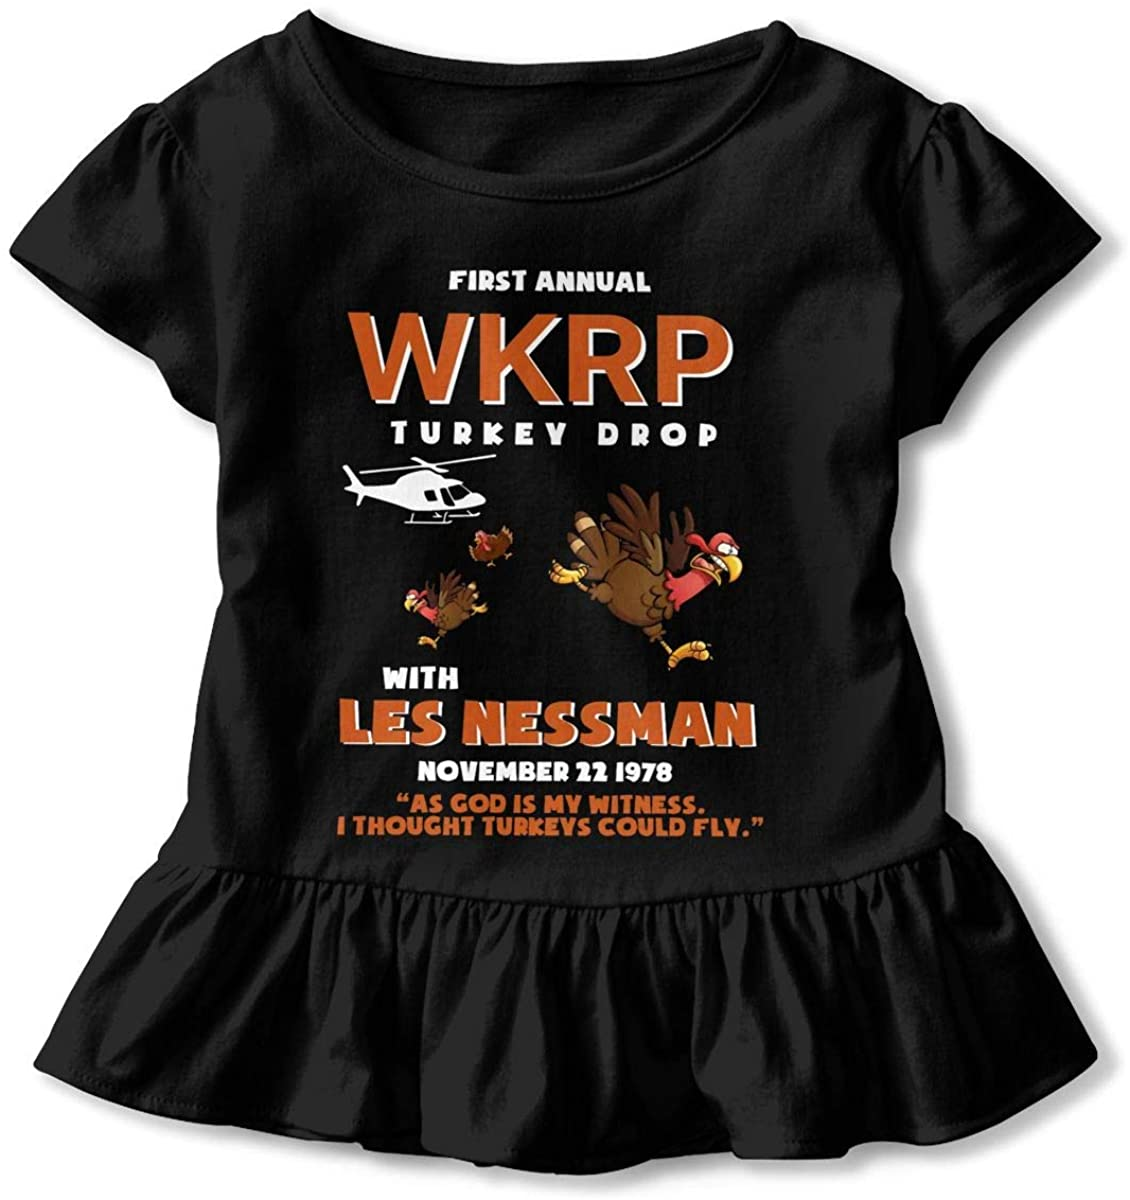 Funny First Annual Wkrp'Turkey'Drop As God is My Witness Children's Short Sleeve T Black